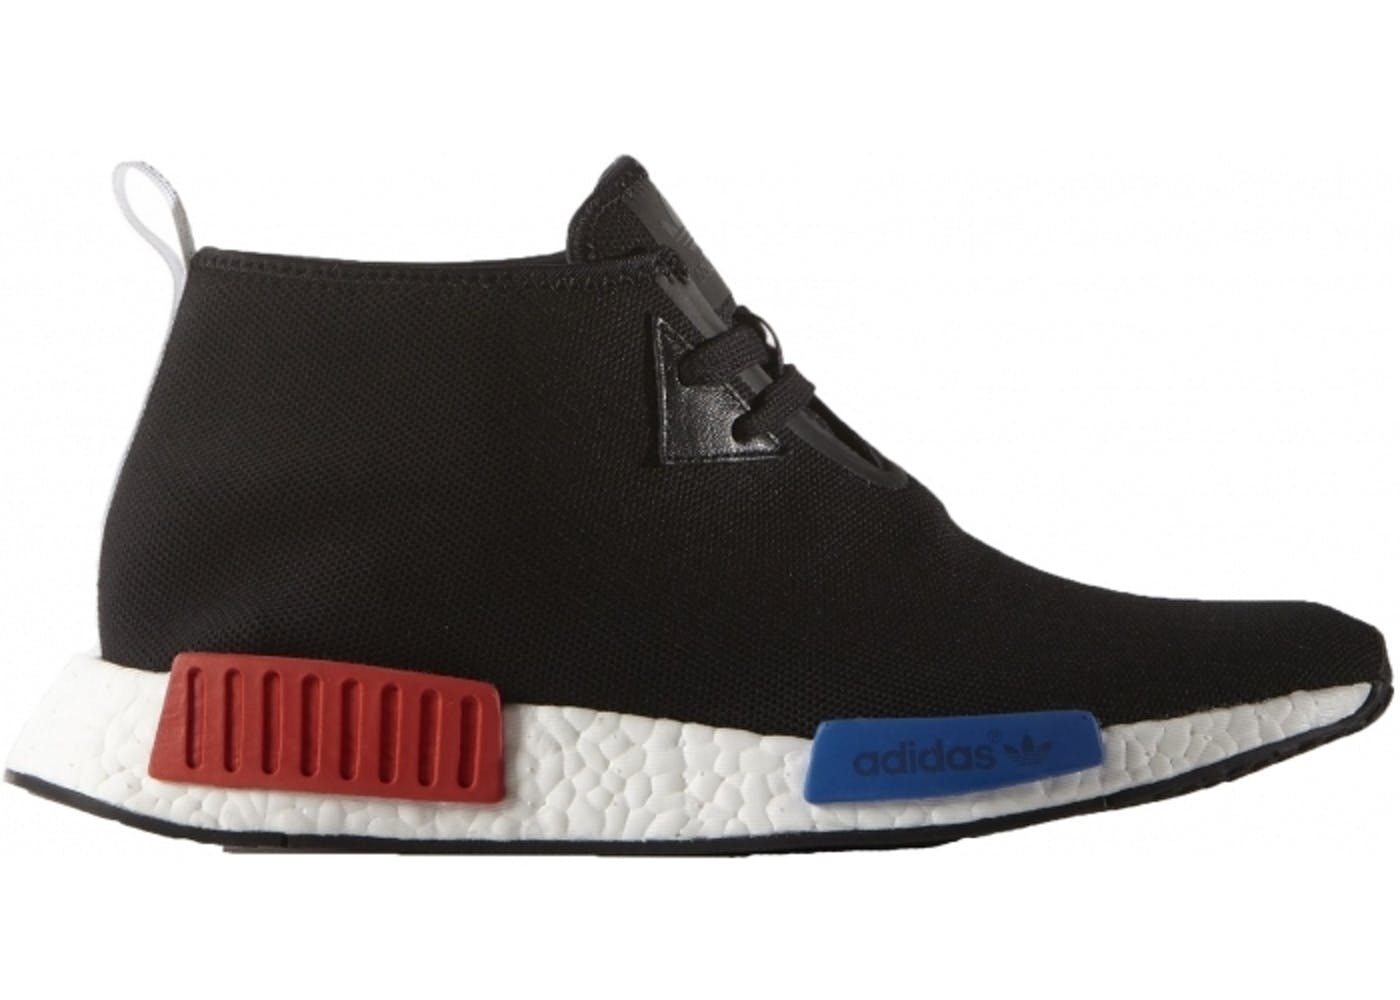 Adidas NMD C1 Chukka White US9 DS (#330724) from YordinSch at